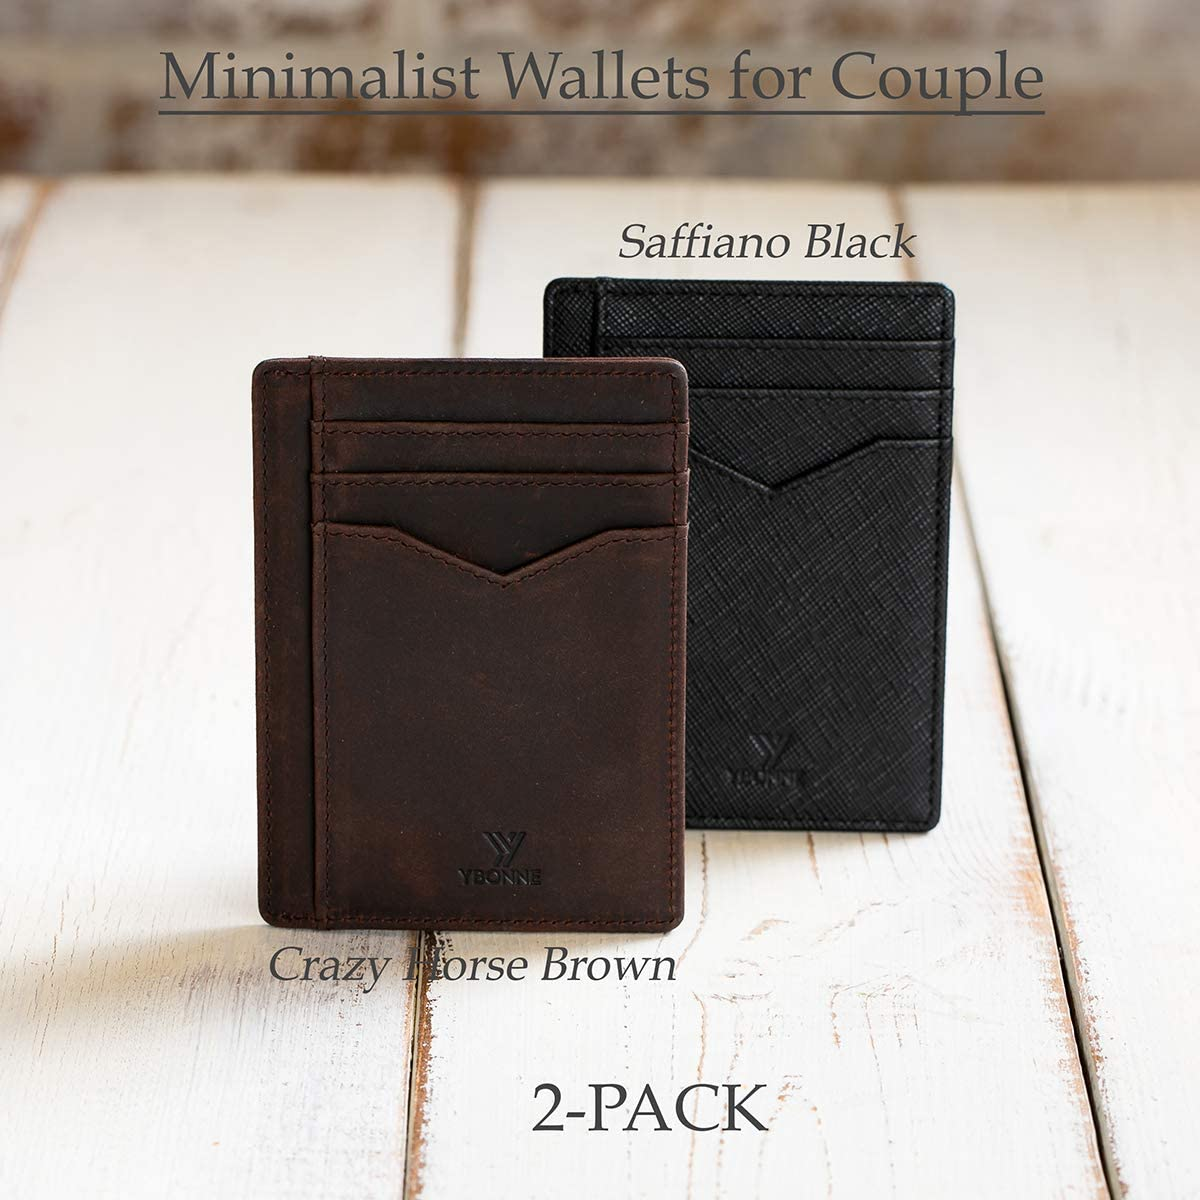 RFID Blocking Thin Card Holder YBONNE Minimalist Front Pocket Wallet for Men and Women Made of Finest Genuine Leather